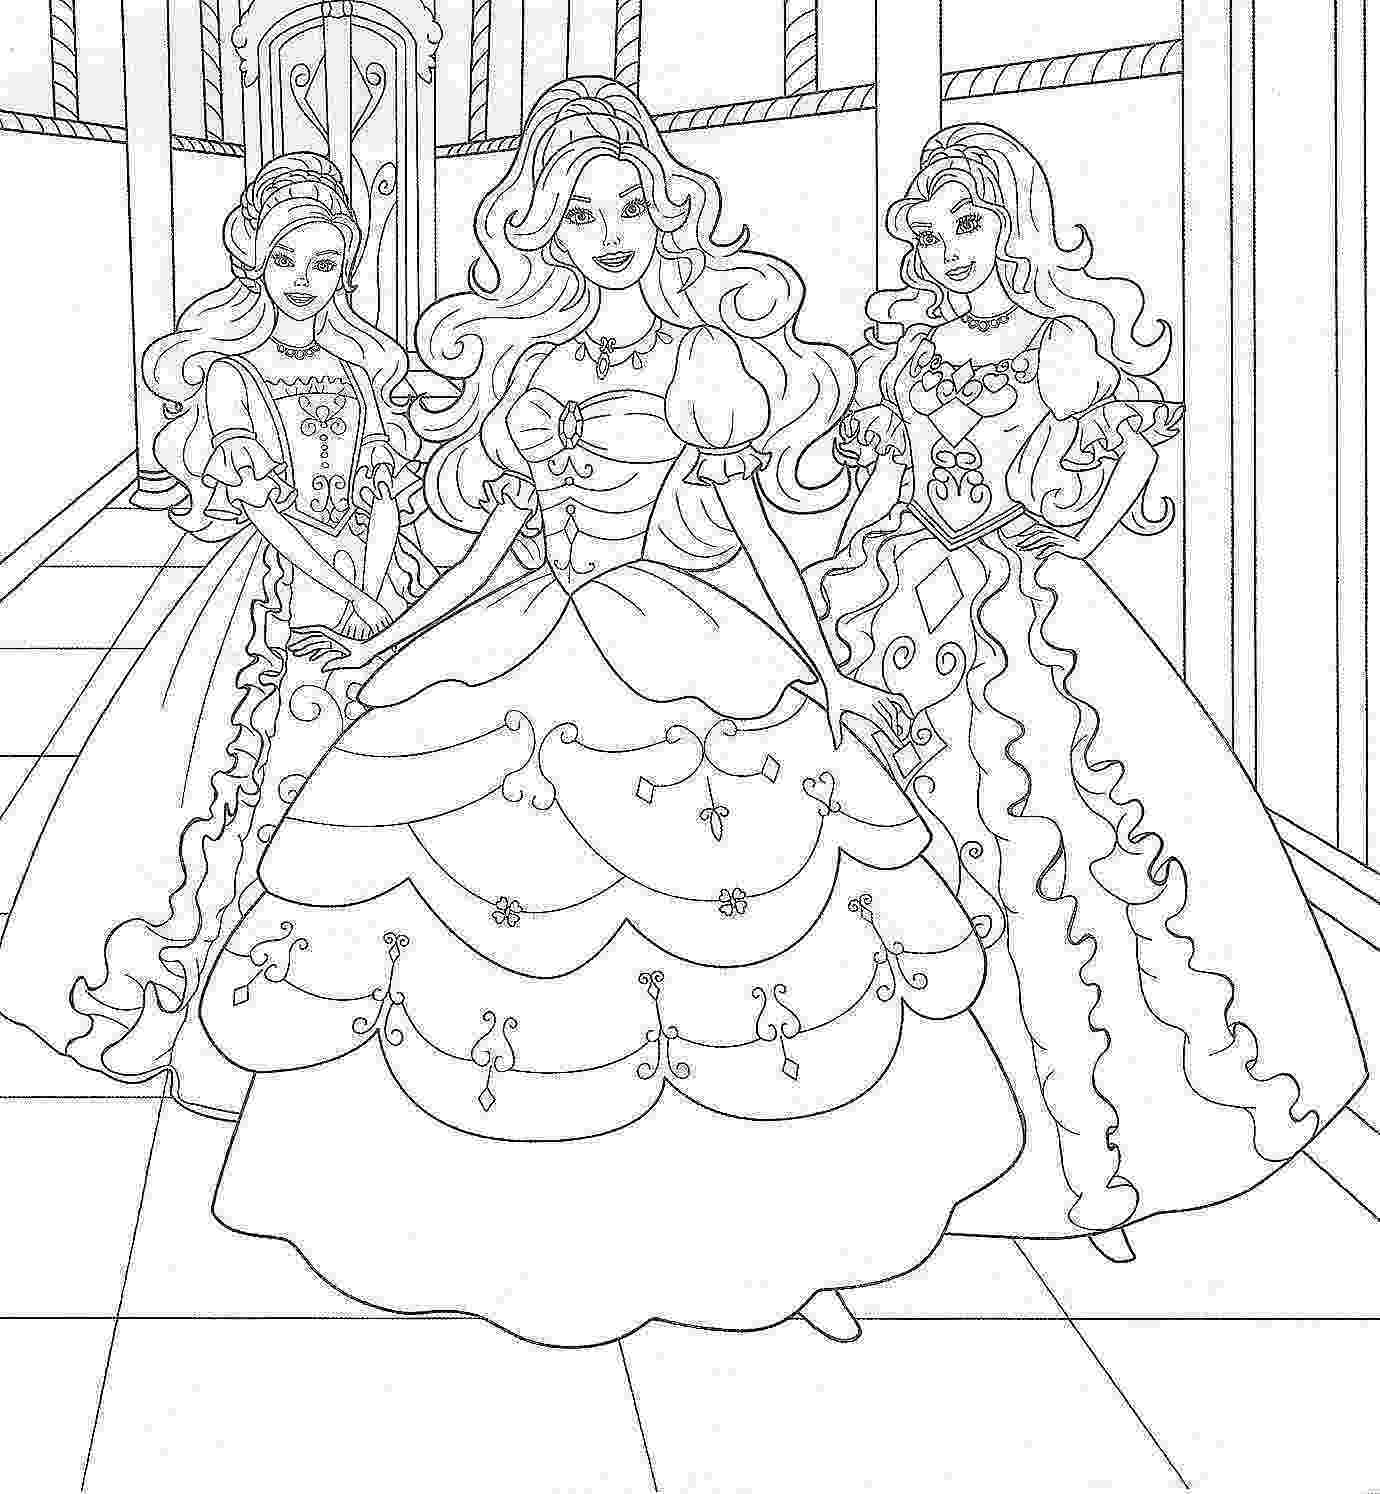 barbie pictures to color games 10 barbie coloring pages online games top free coloring pictures color games barbie to